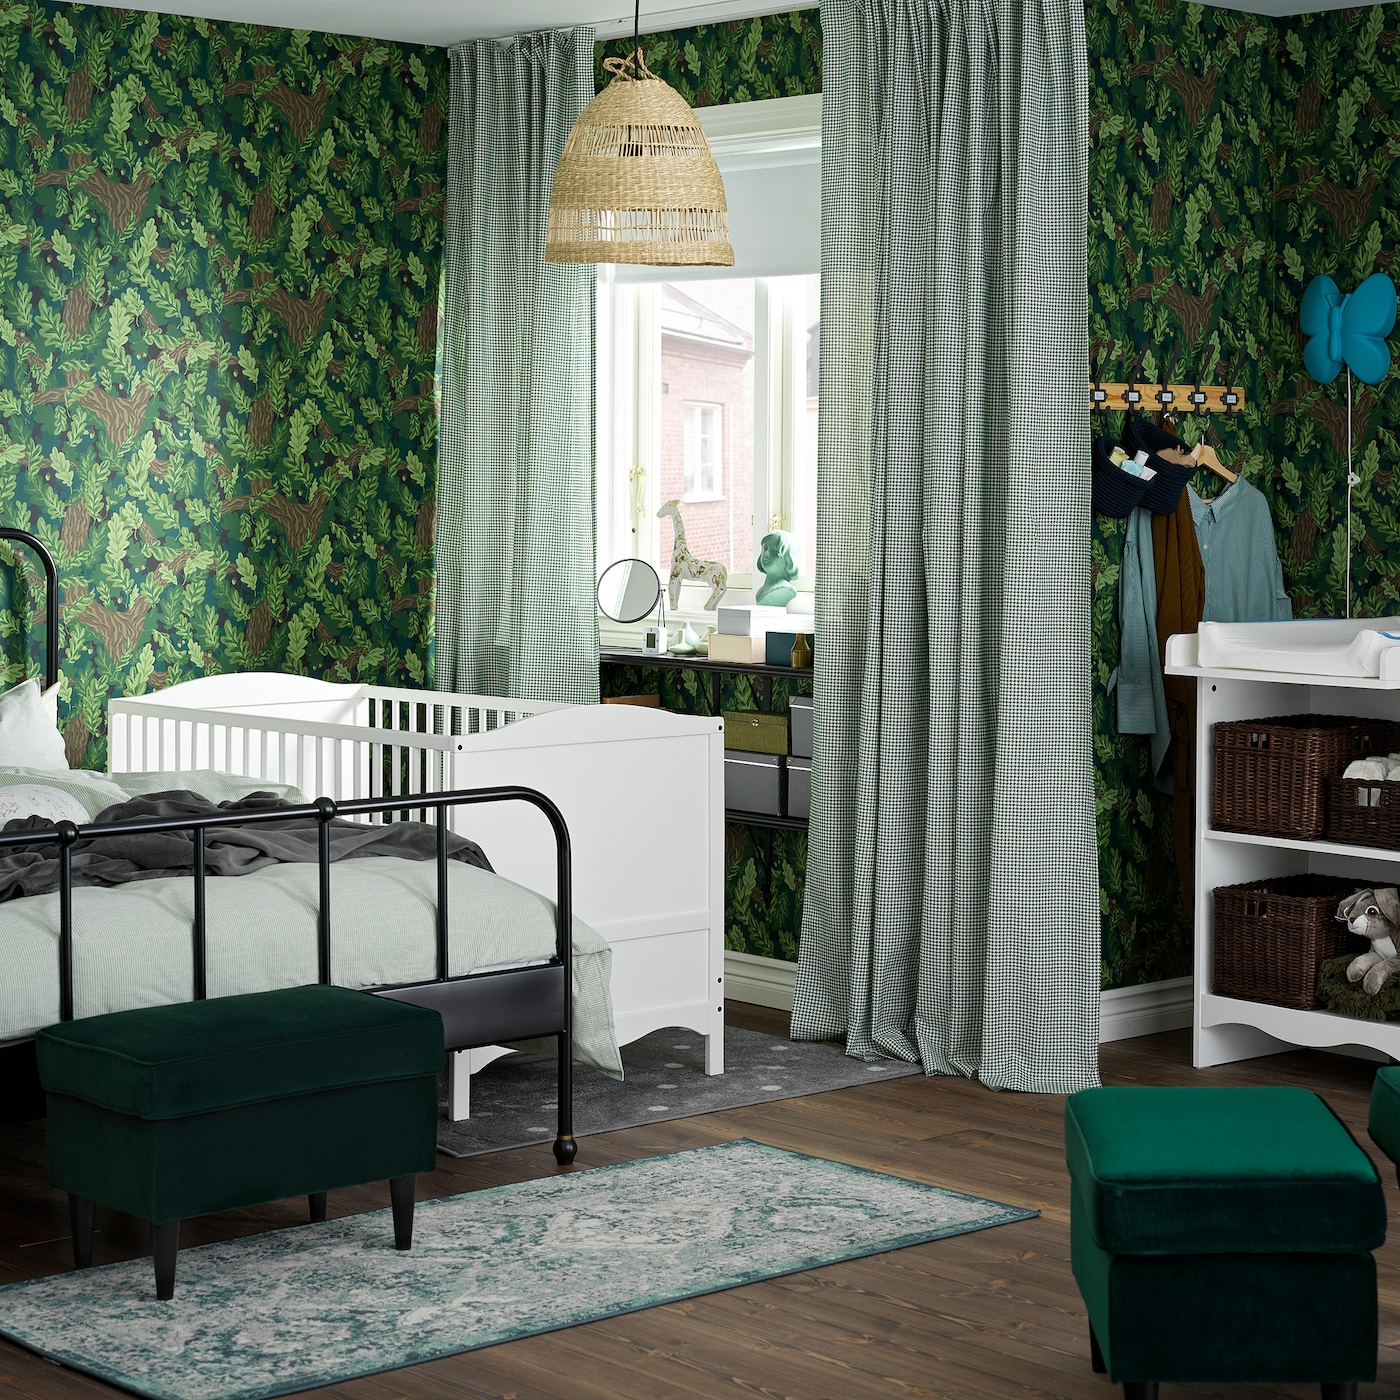 An overall green bedroom/children's room with a changing table and cot in white, a black bed frame and white/green curtains.